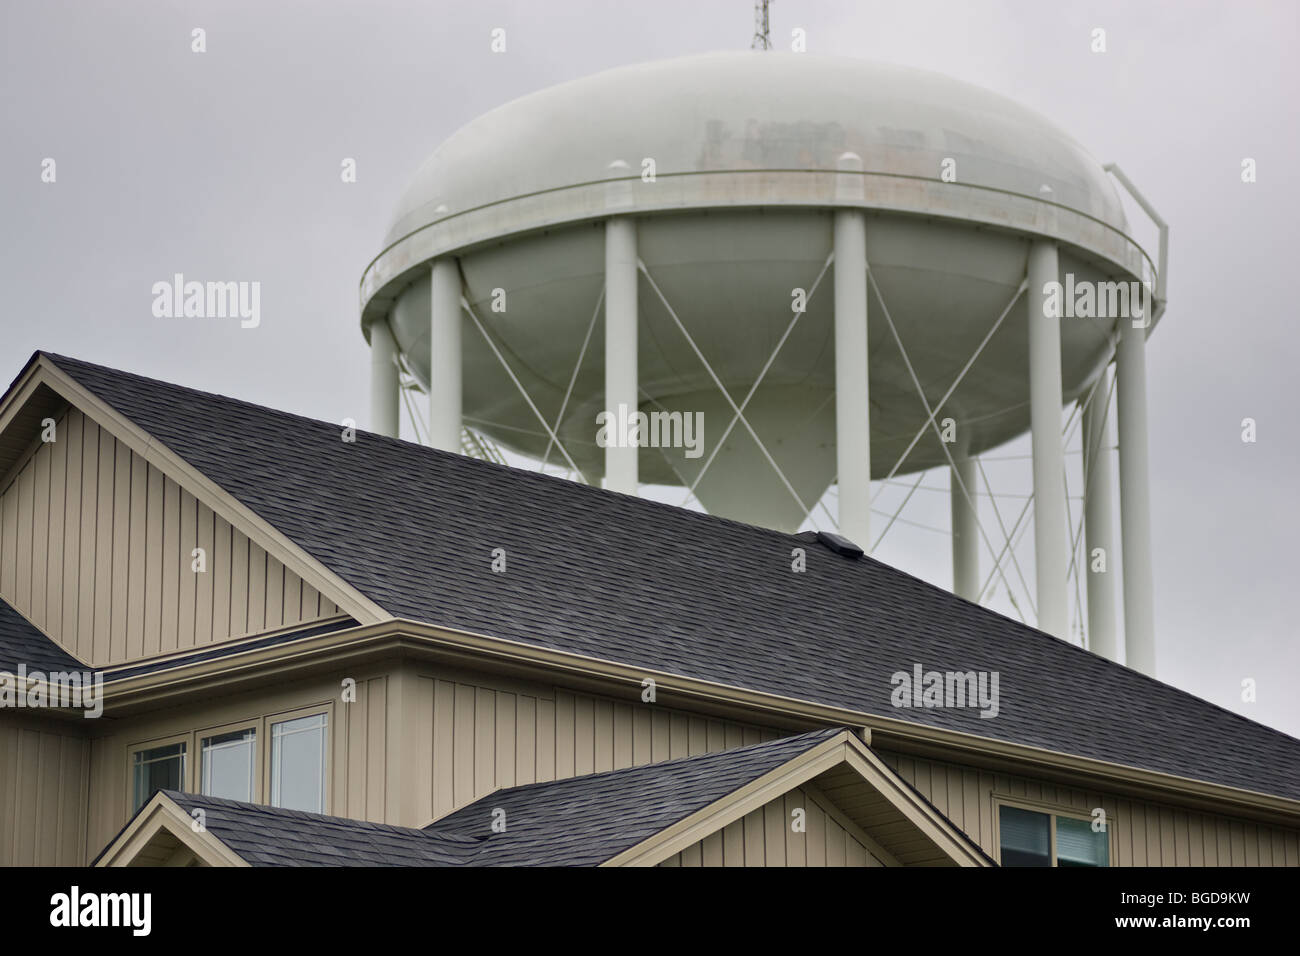 The Top Of A Residential House With A Large Water Tower Prominent